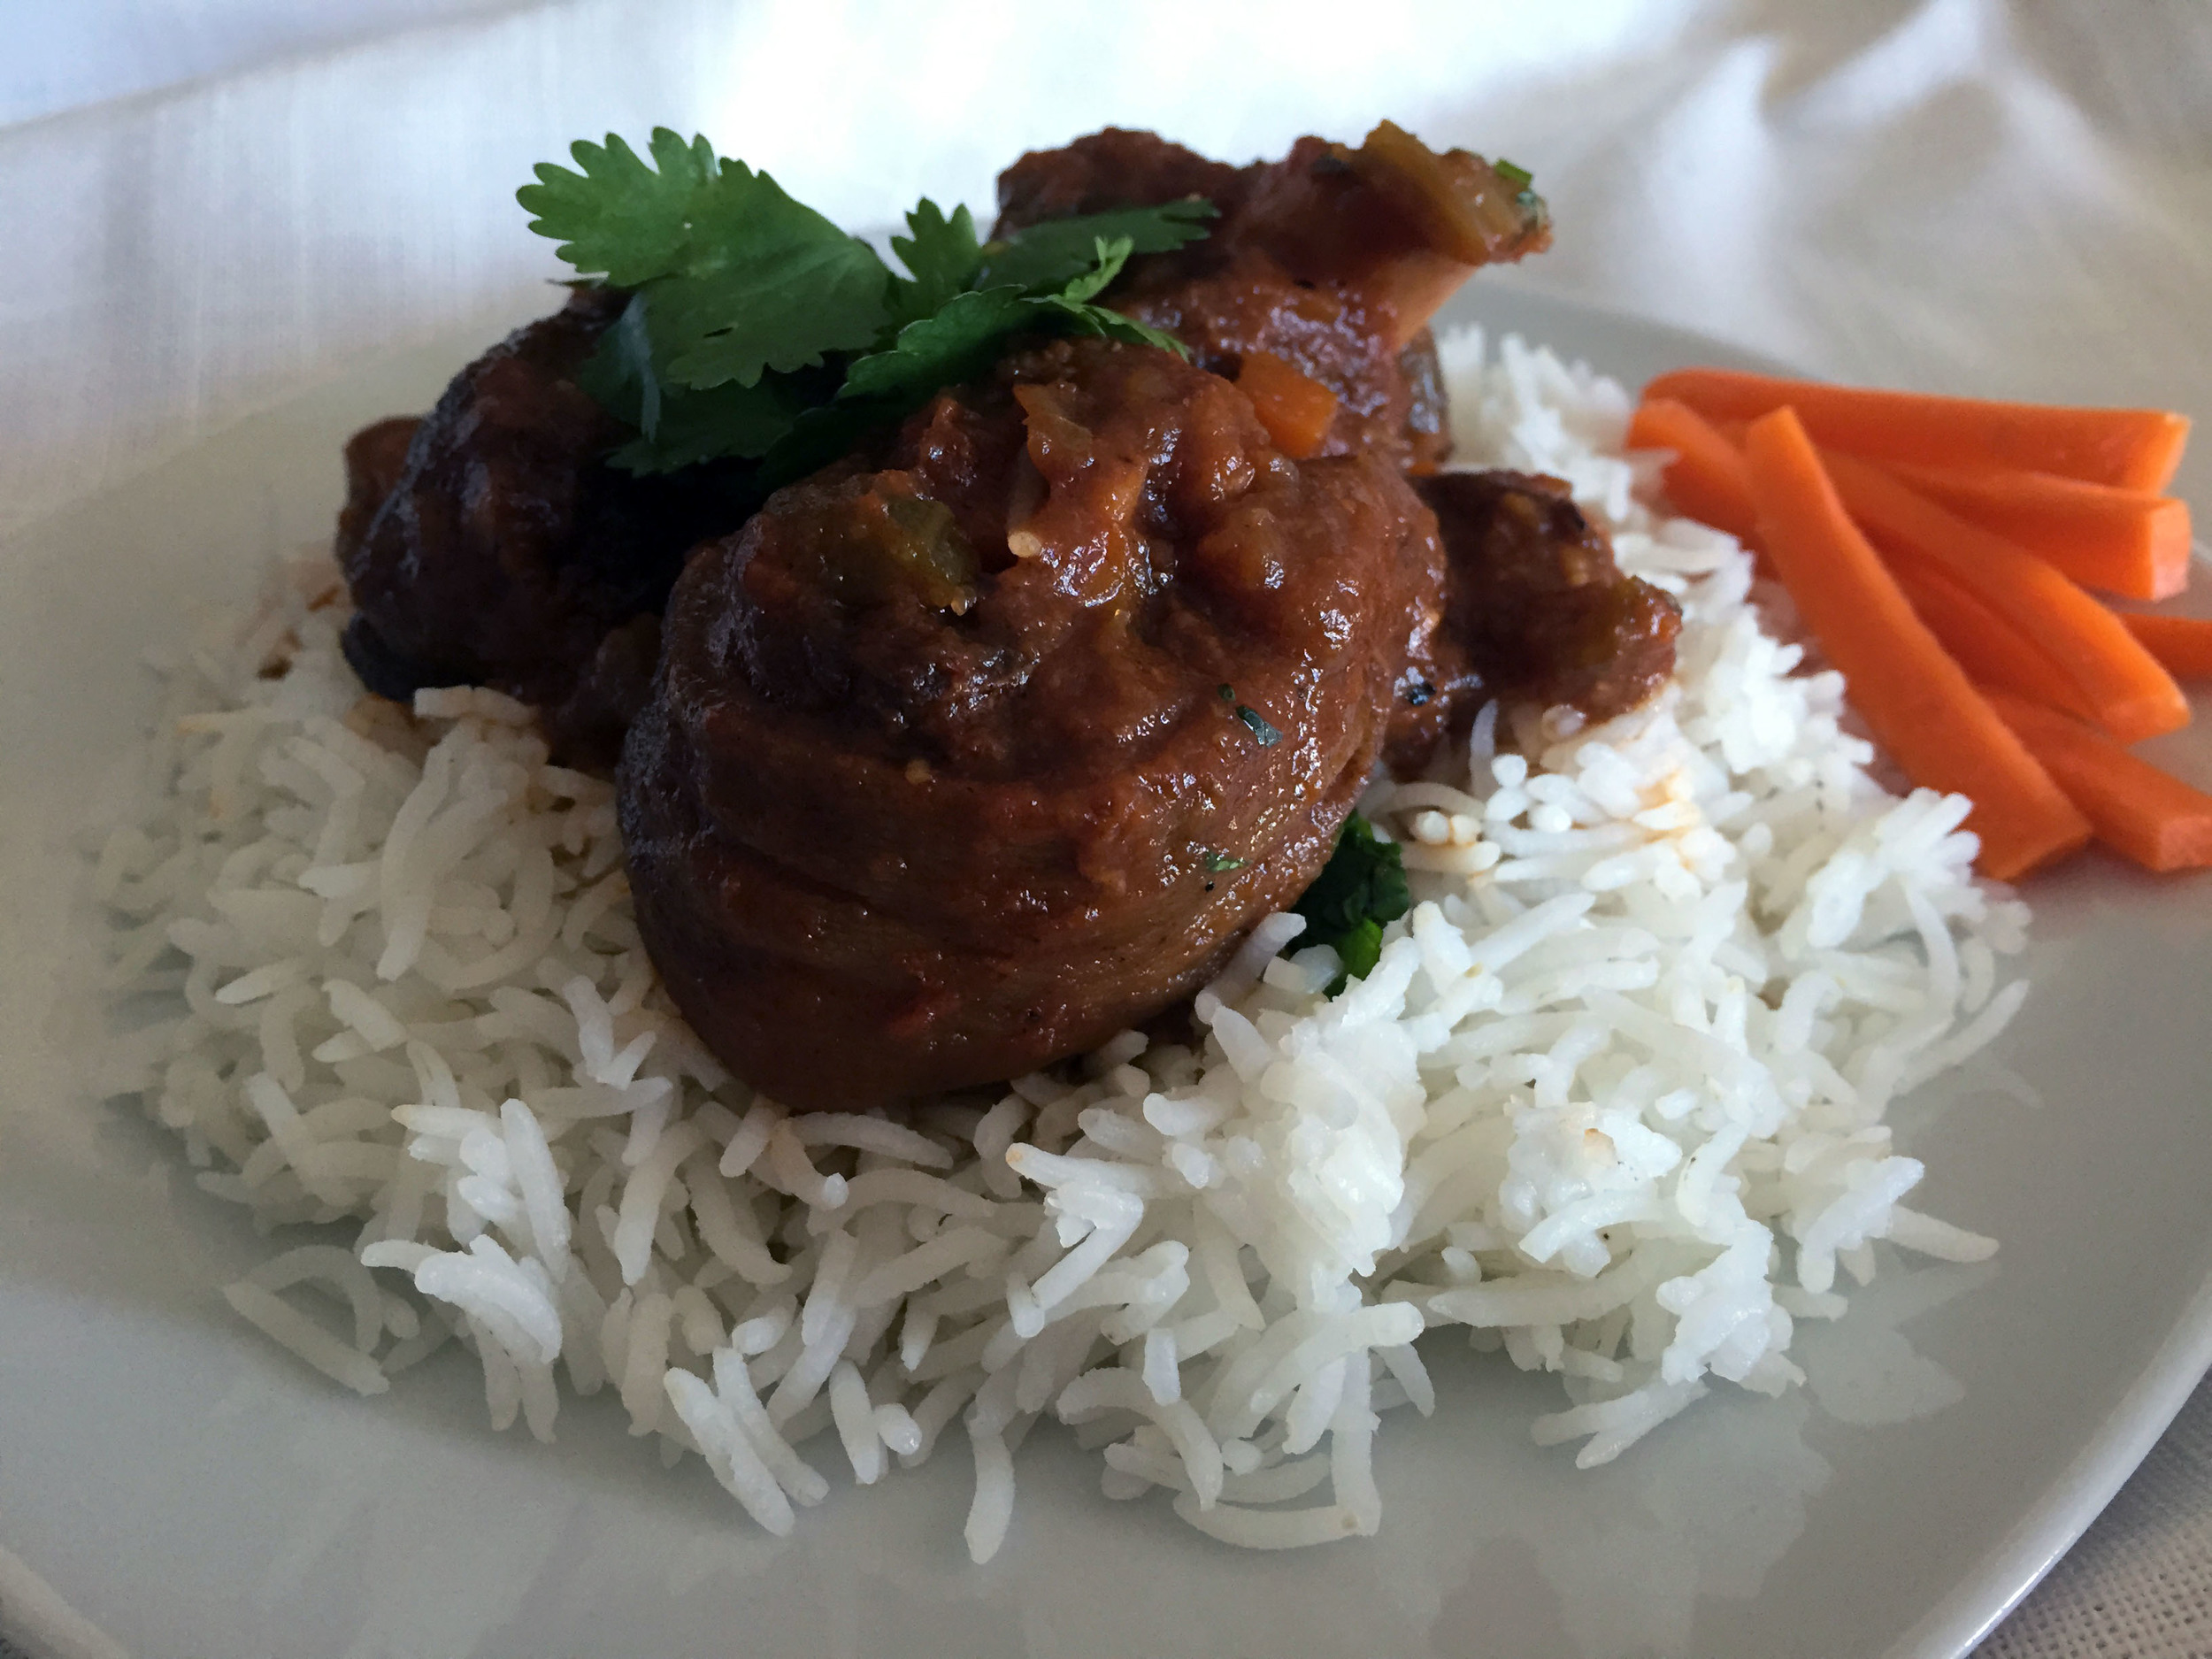 Braised goat and rice